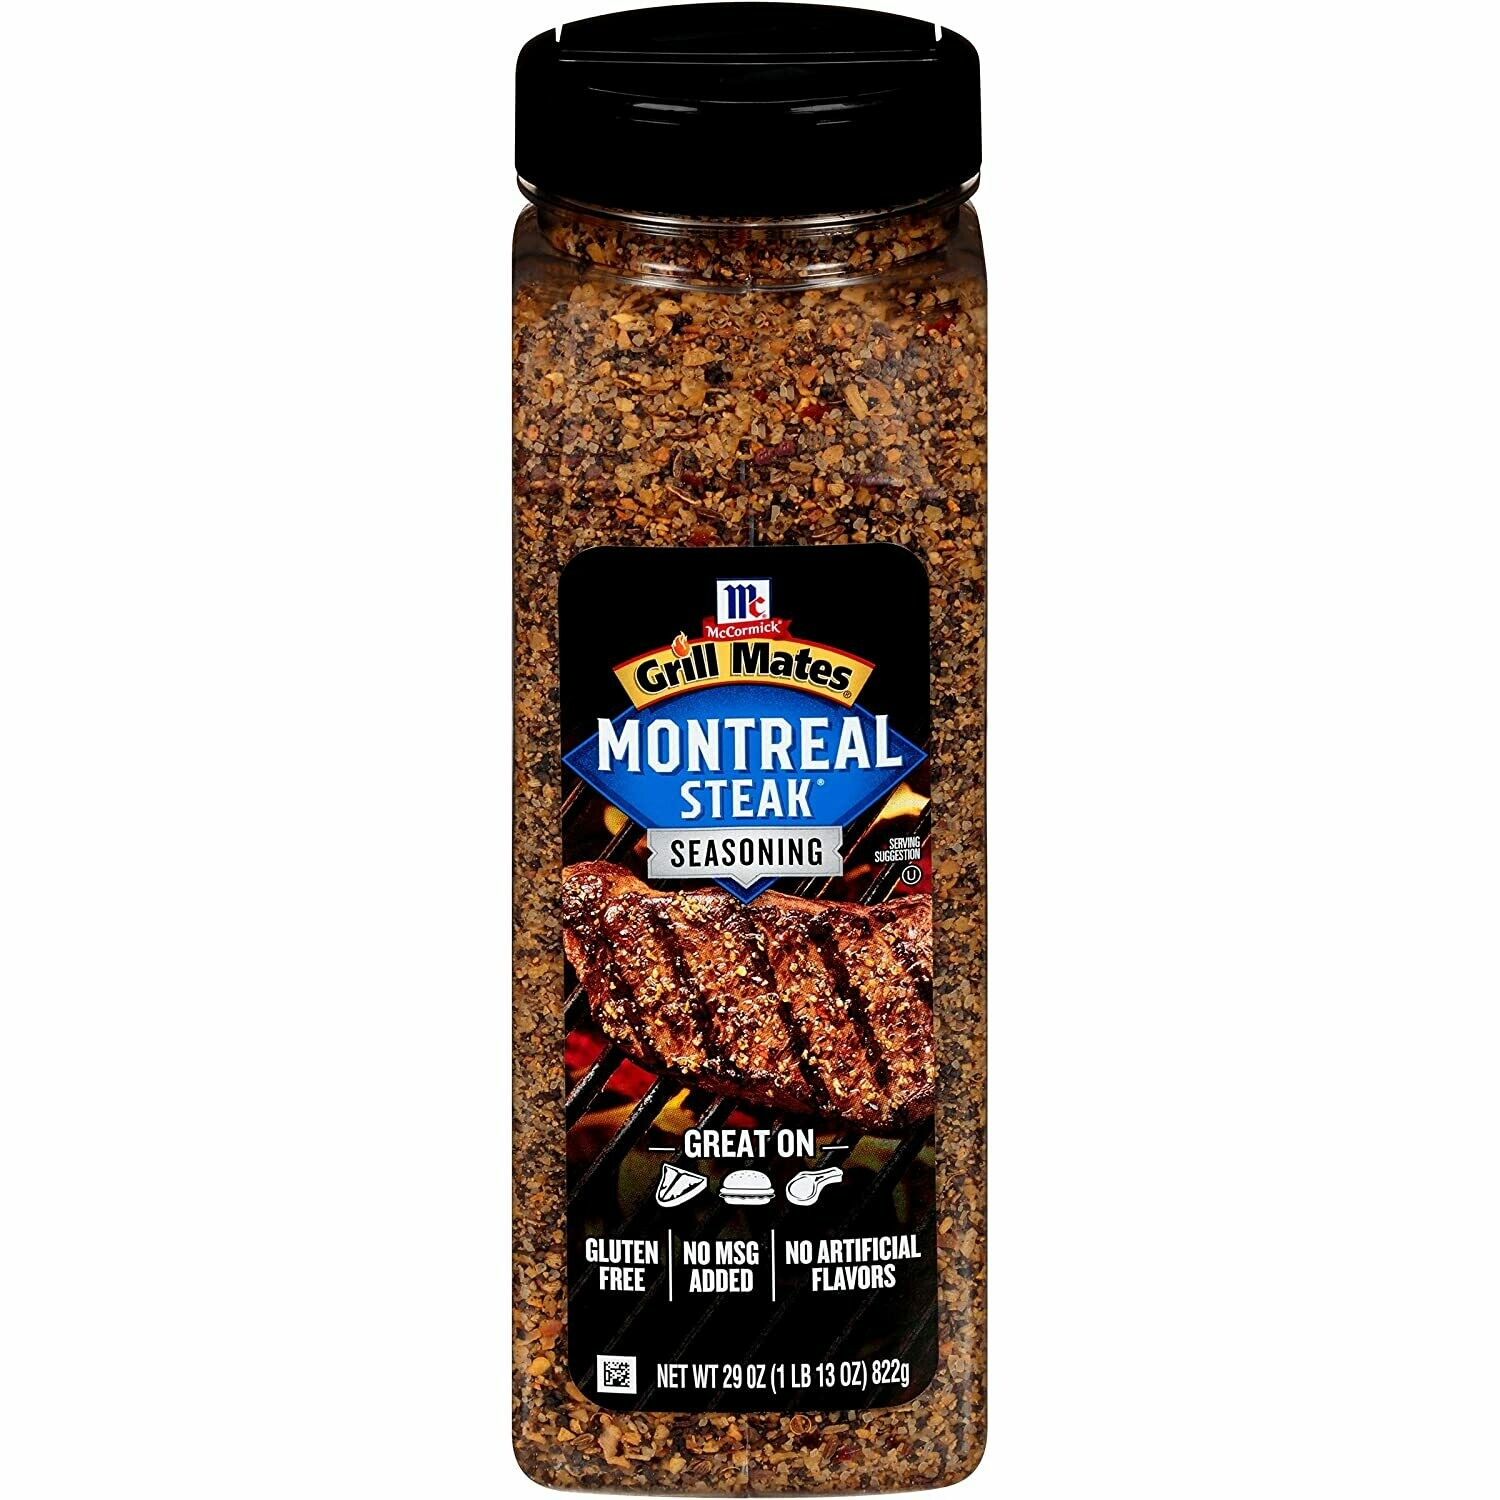 * McCormick Grill Mates Montreal Steak Seasoning 29 Ounces